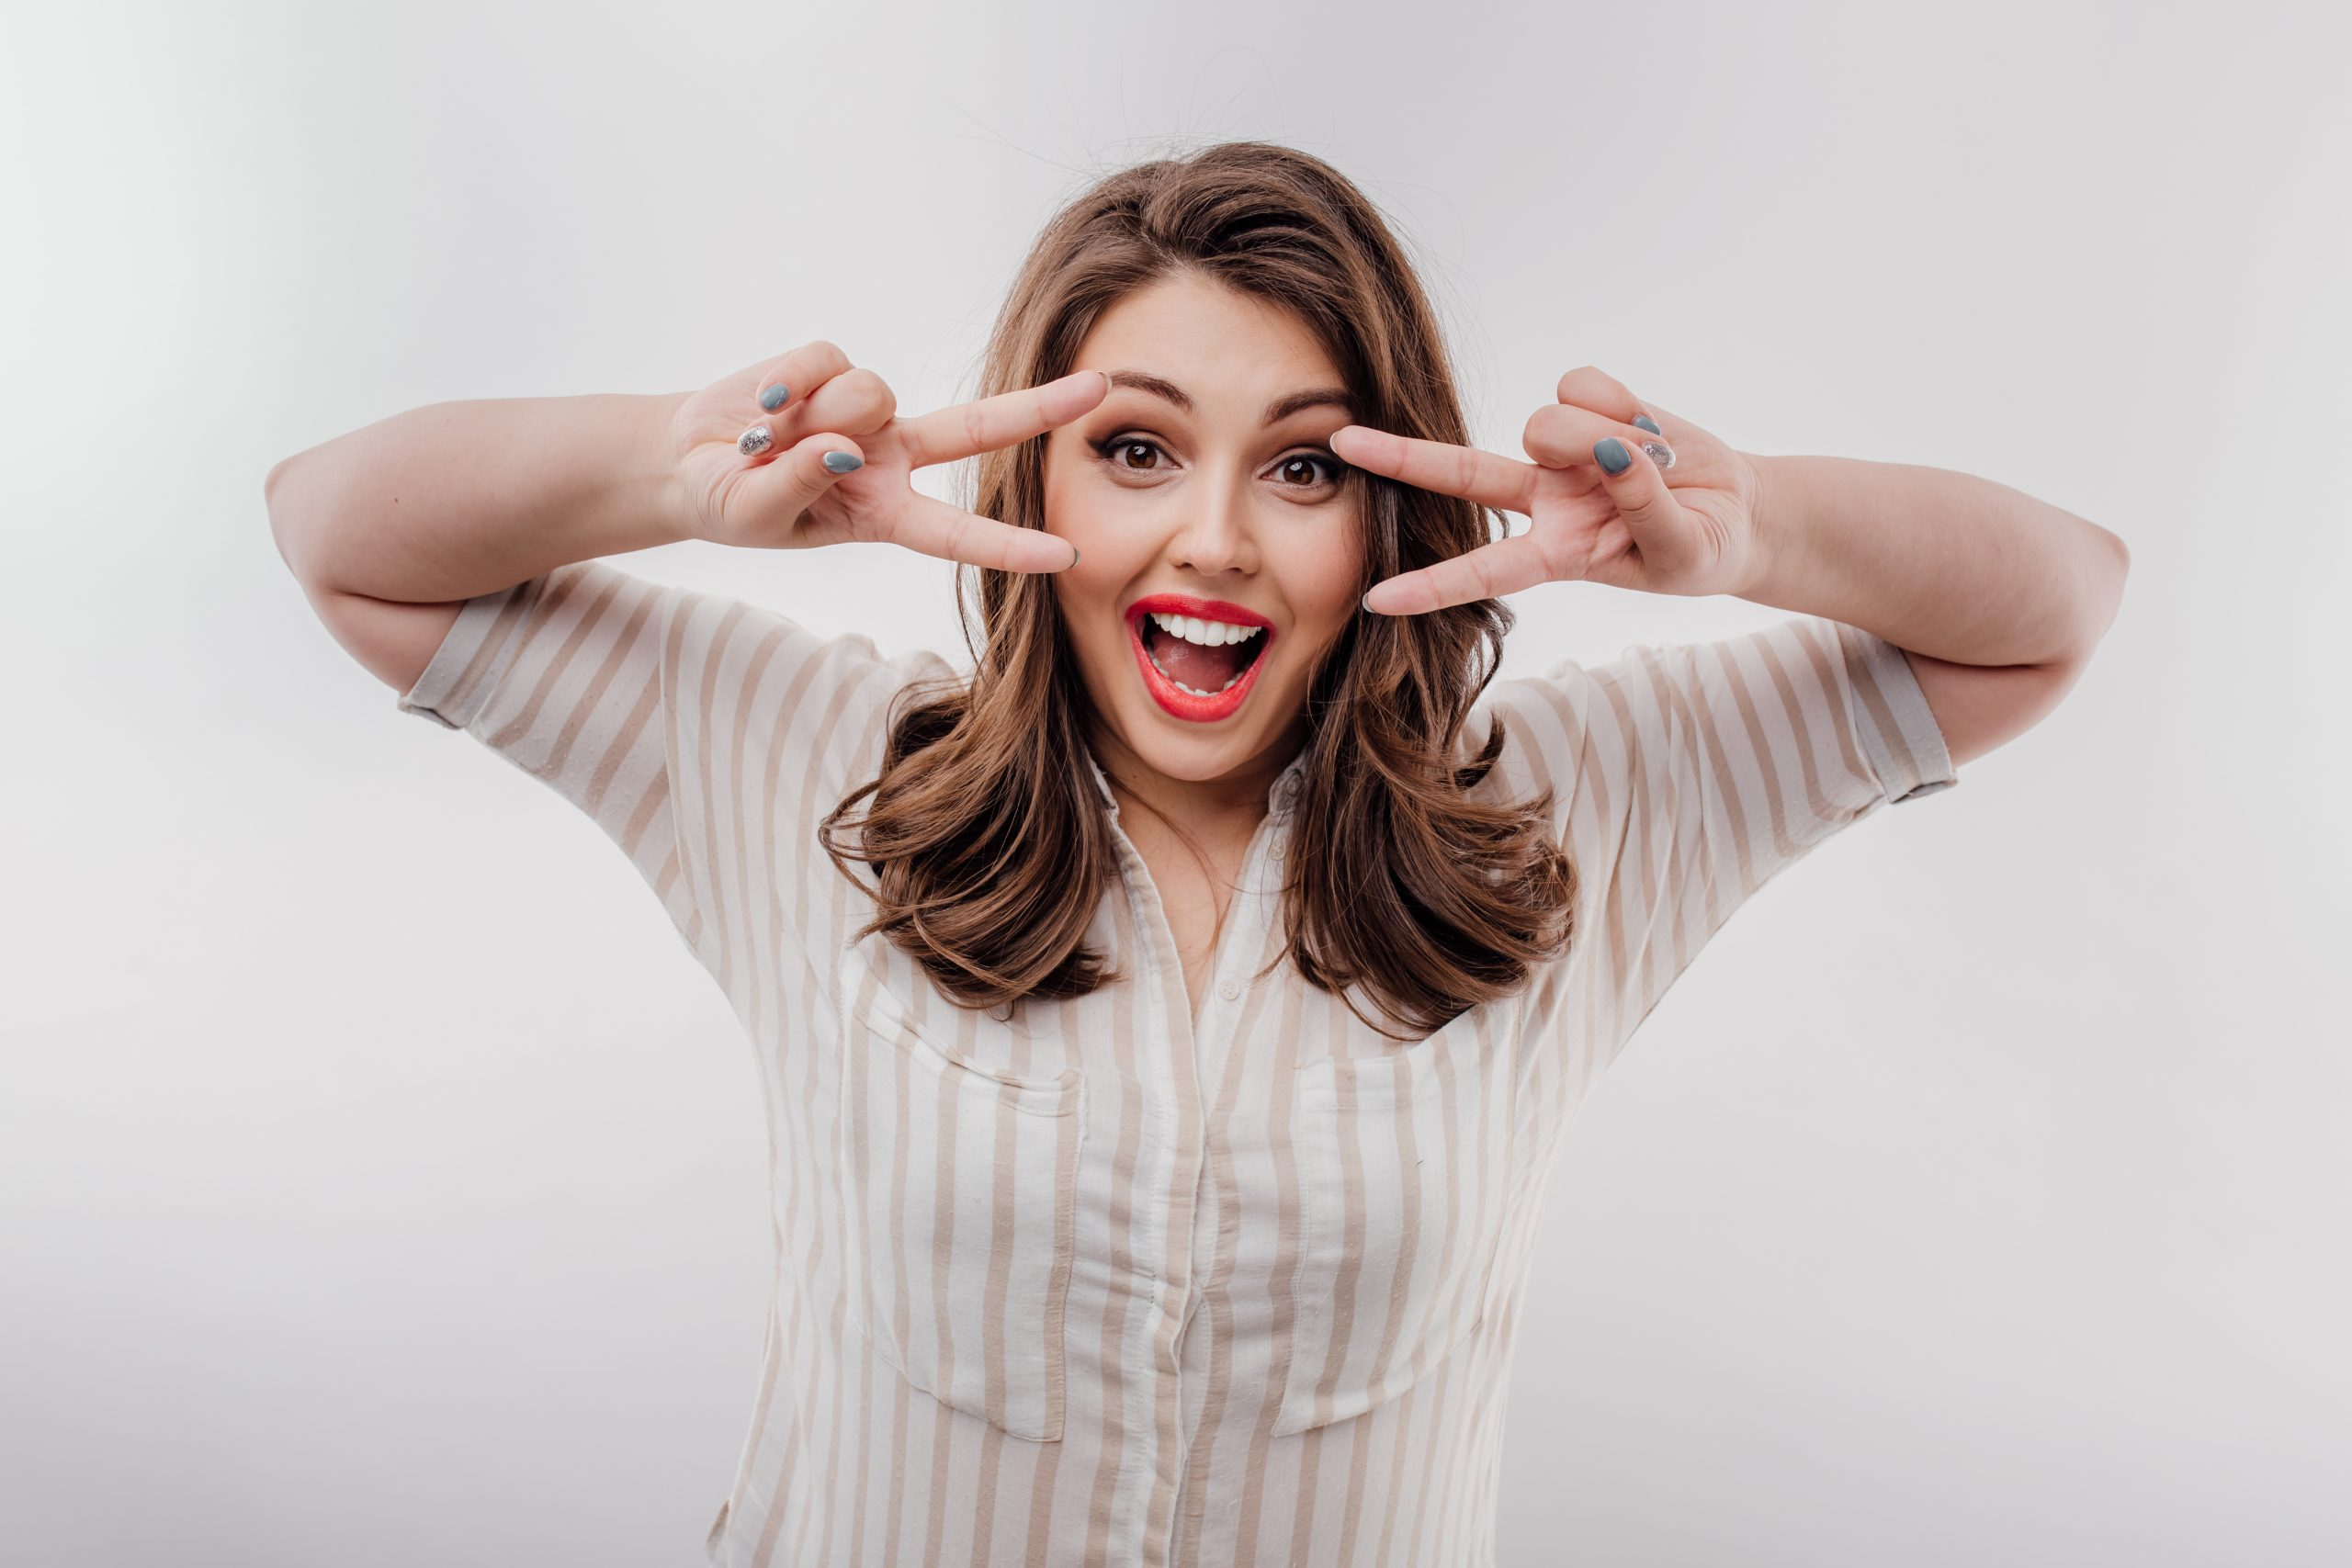 Excited plus size female gesturing V sign